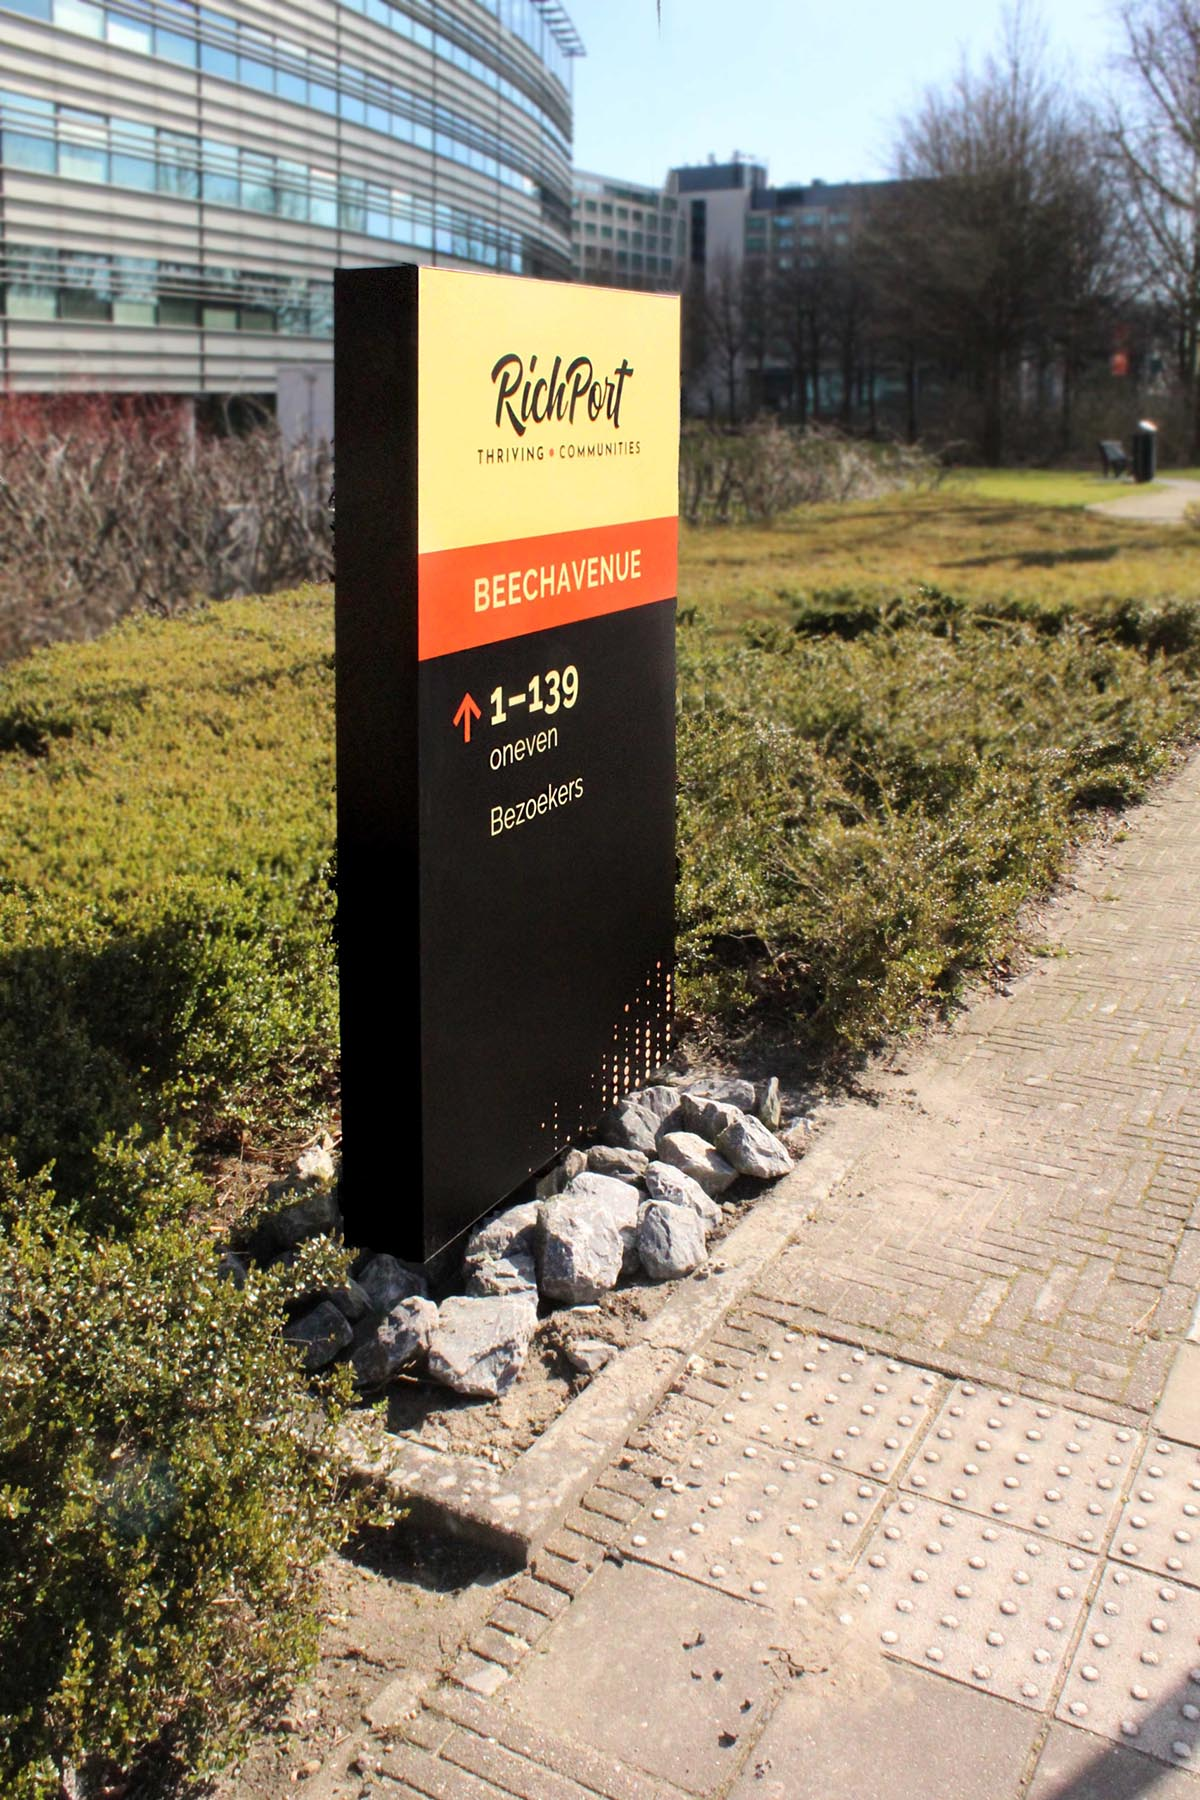 Richport 7 | Groeneveld Sign Systems